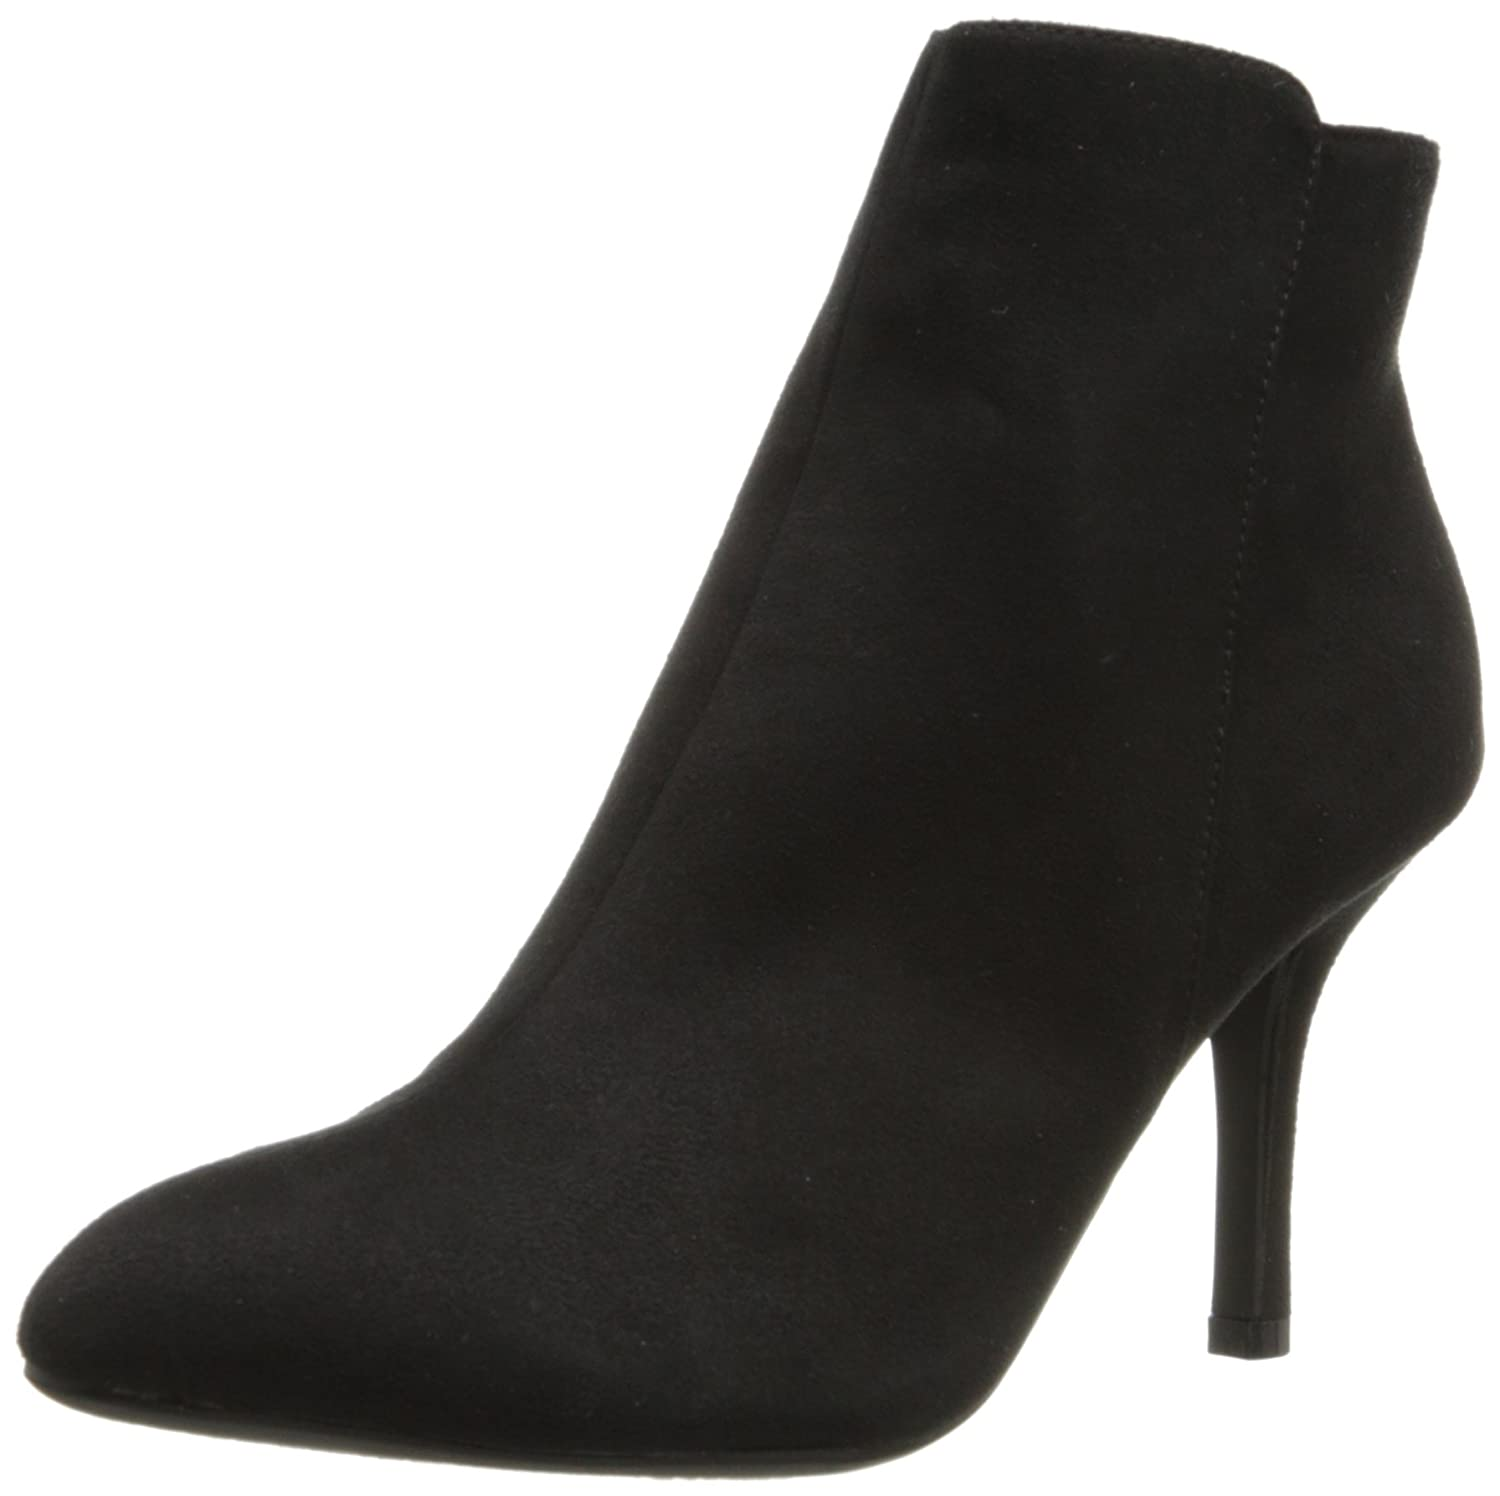 CL by Chinese Laundry Women's Sonesta Ankle Boot,Black Faux Suede,11 M US